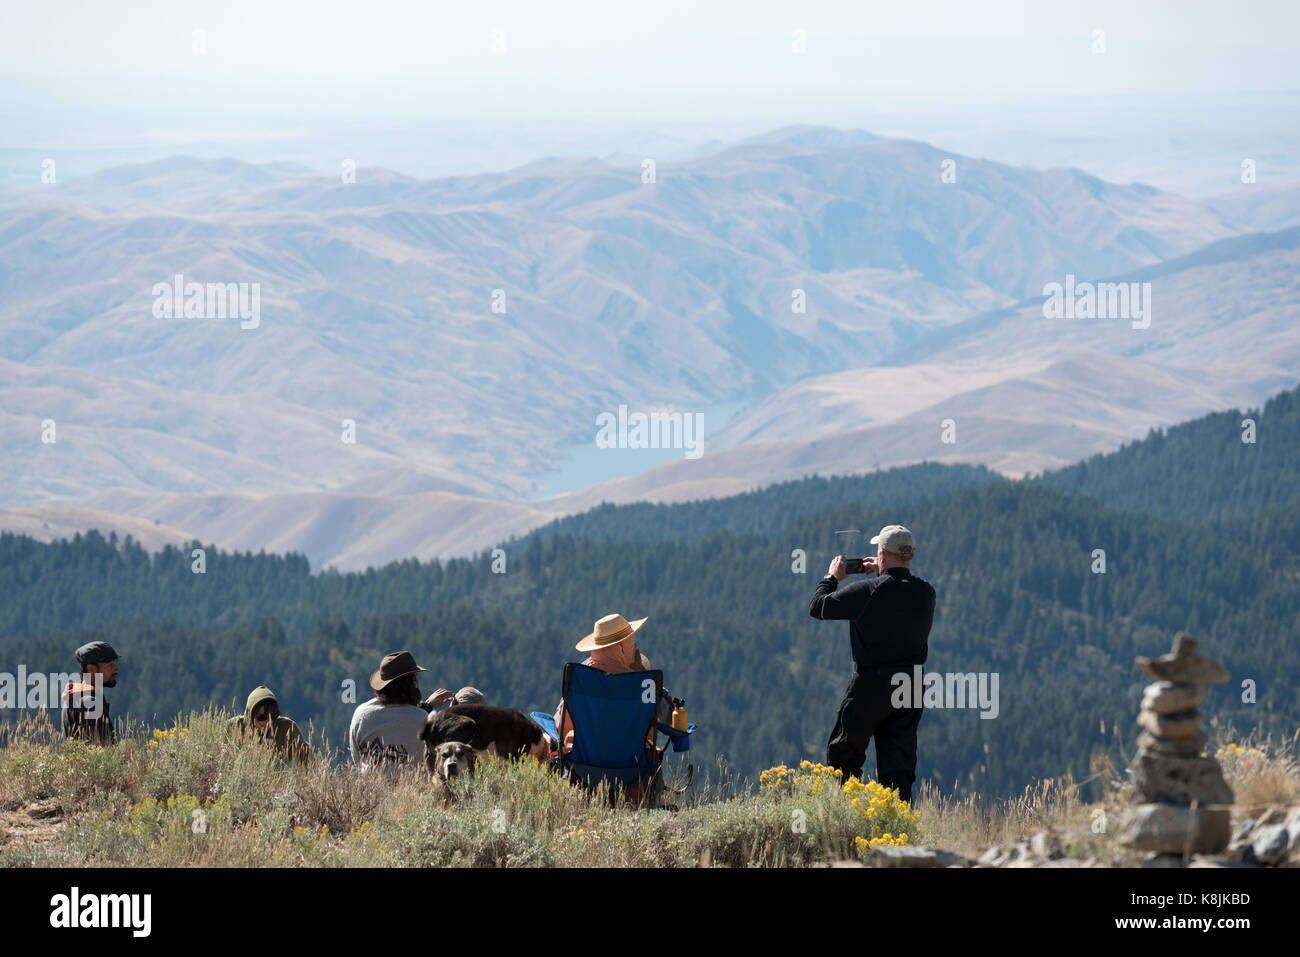 Eclipse watchers on the summit of Big Lookout Mountain in Eastern Oregon. - Stock Image